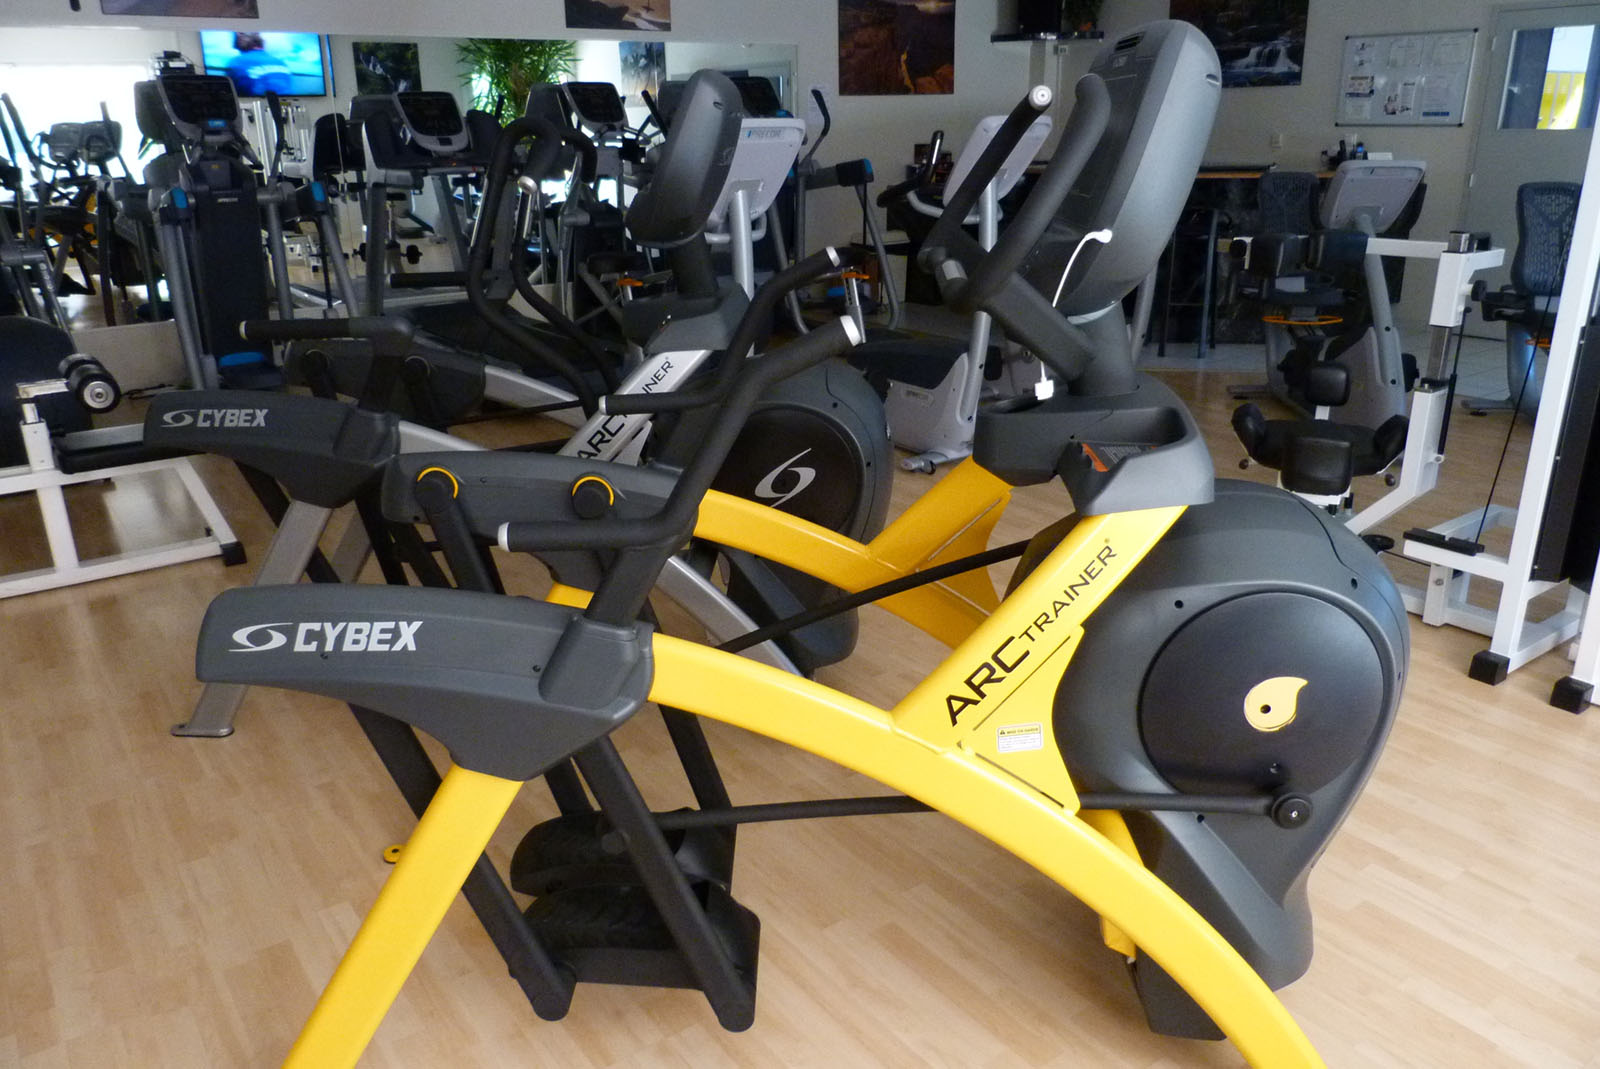 Salle de sport Bergerac Arc Trainer Lower Body 770A Cybex 1